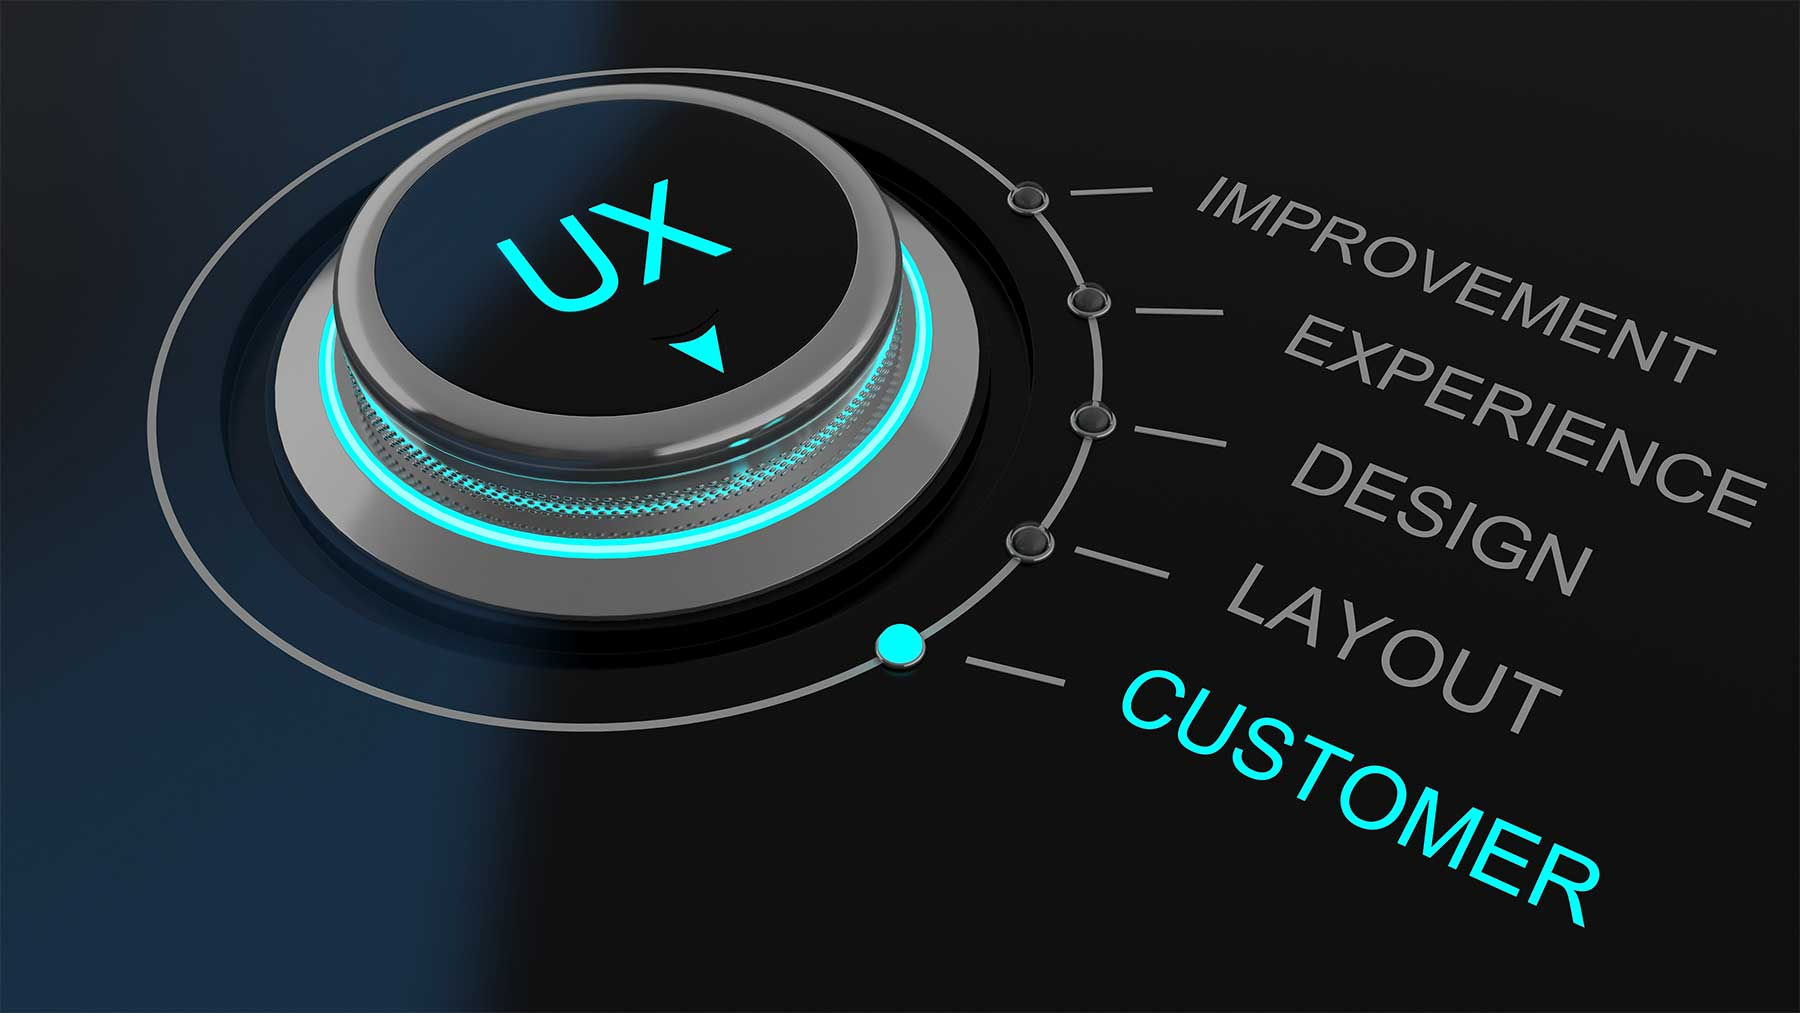 Tips for User Experience on Websites